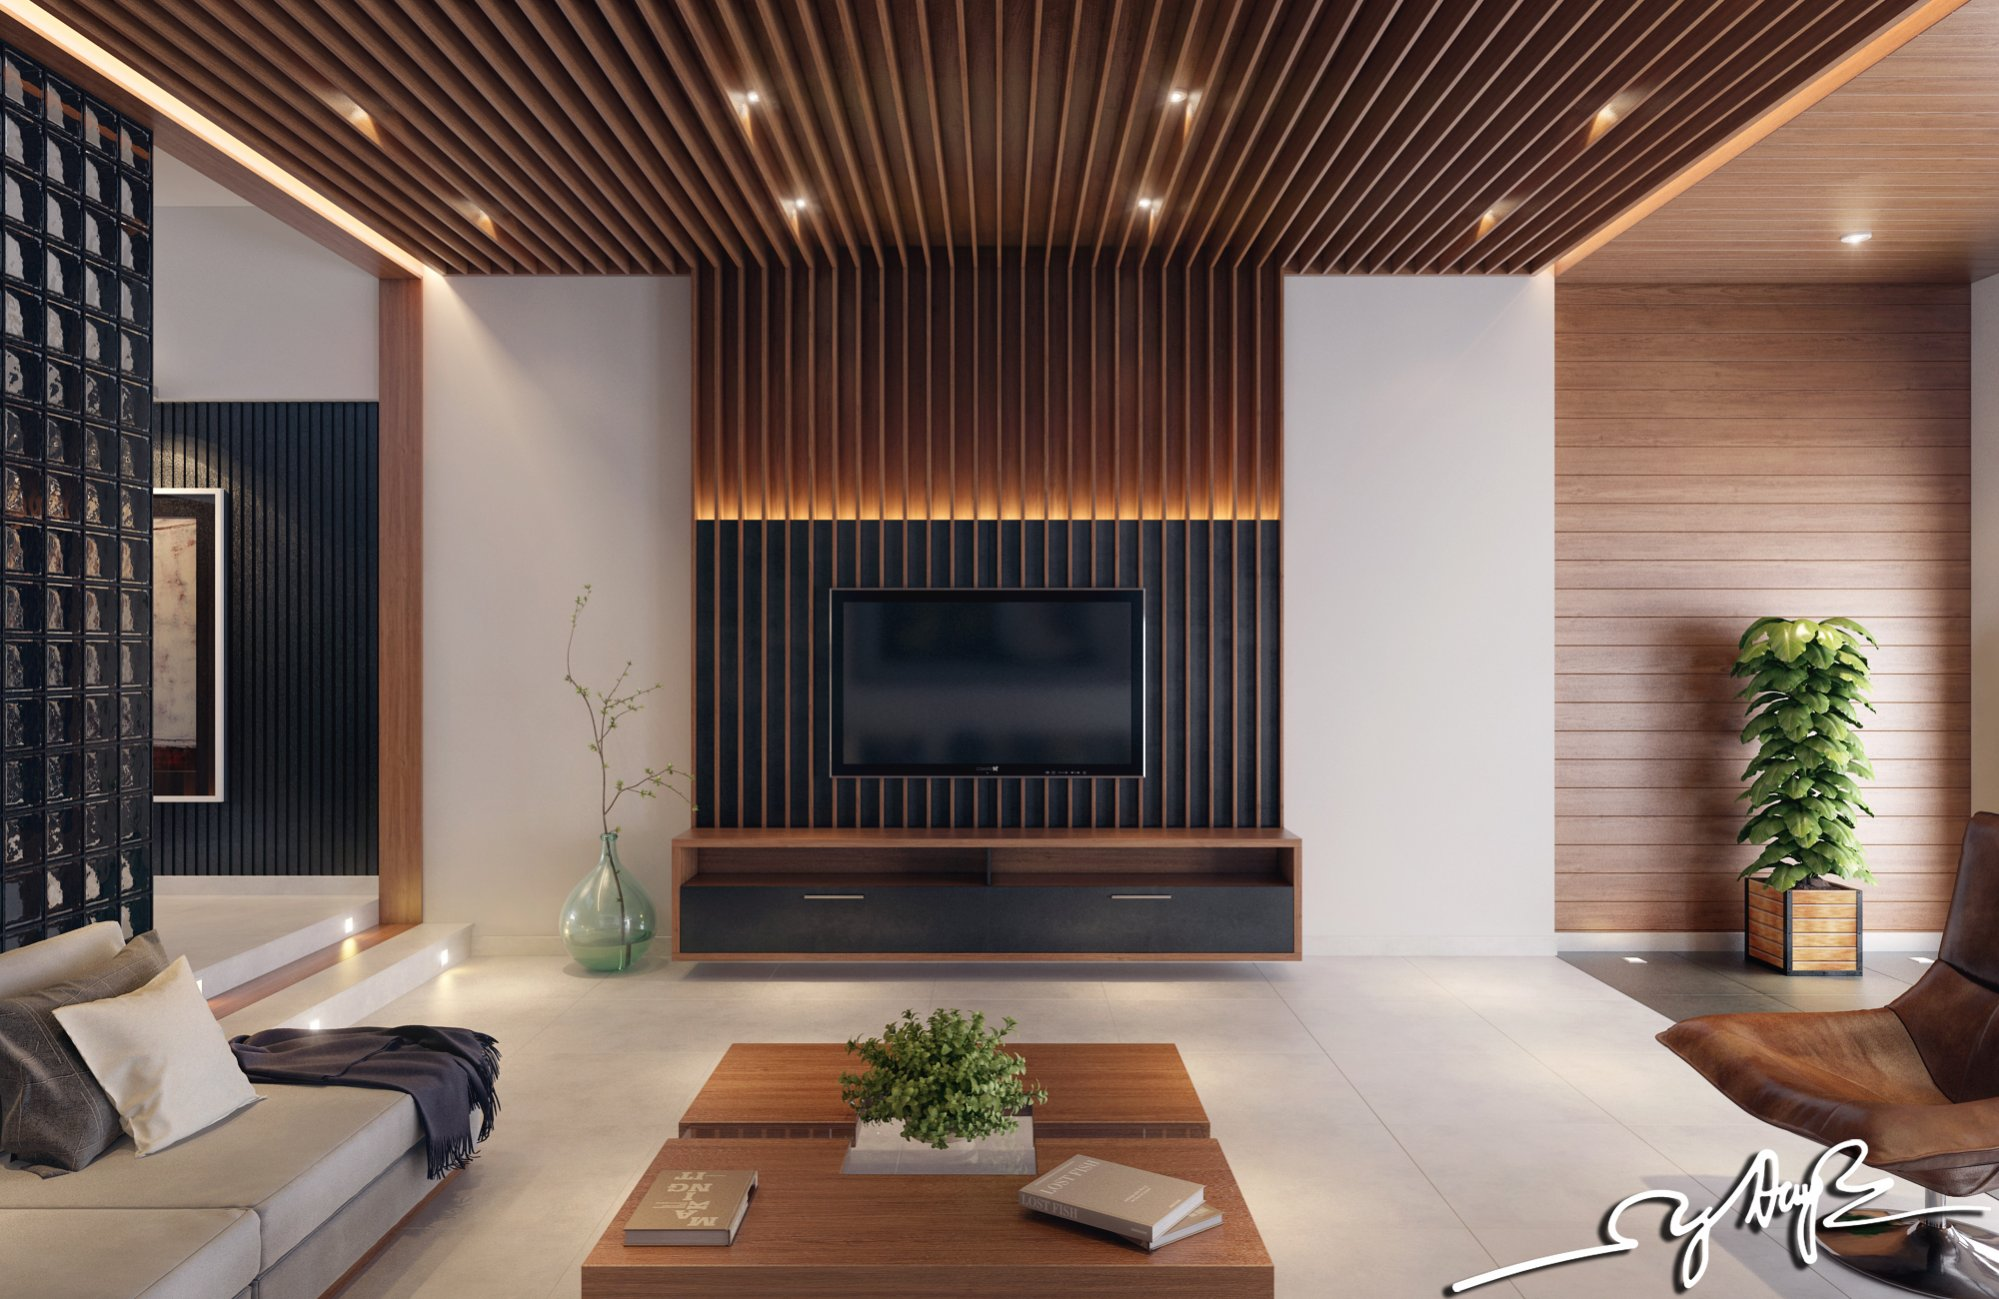 Interior design close to nature rich wood themes and for Interior wall design